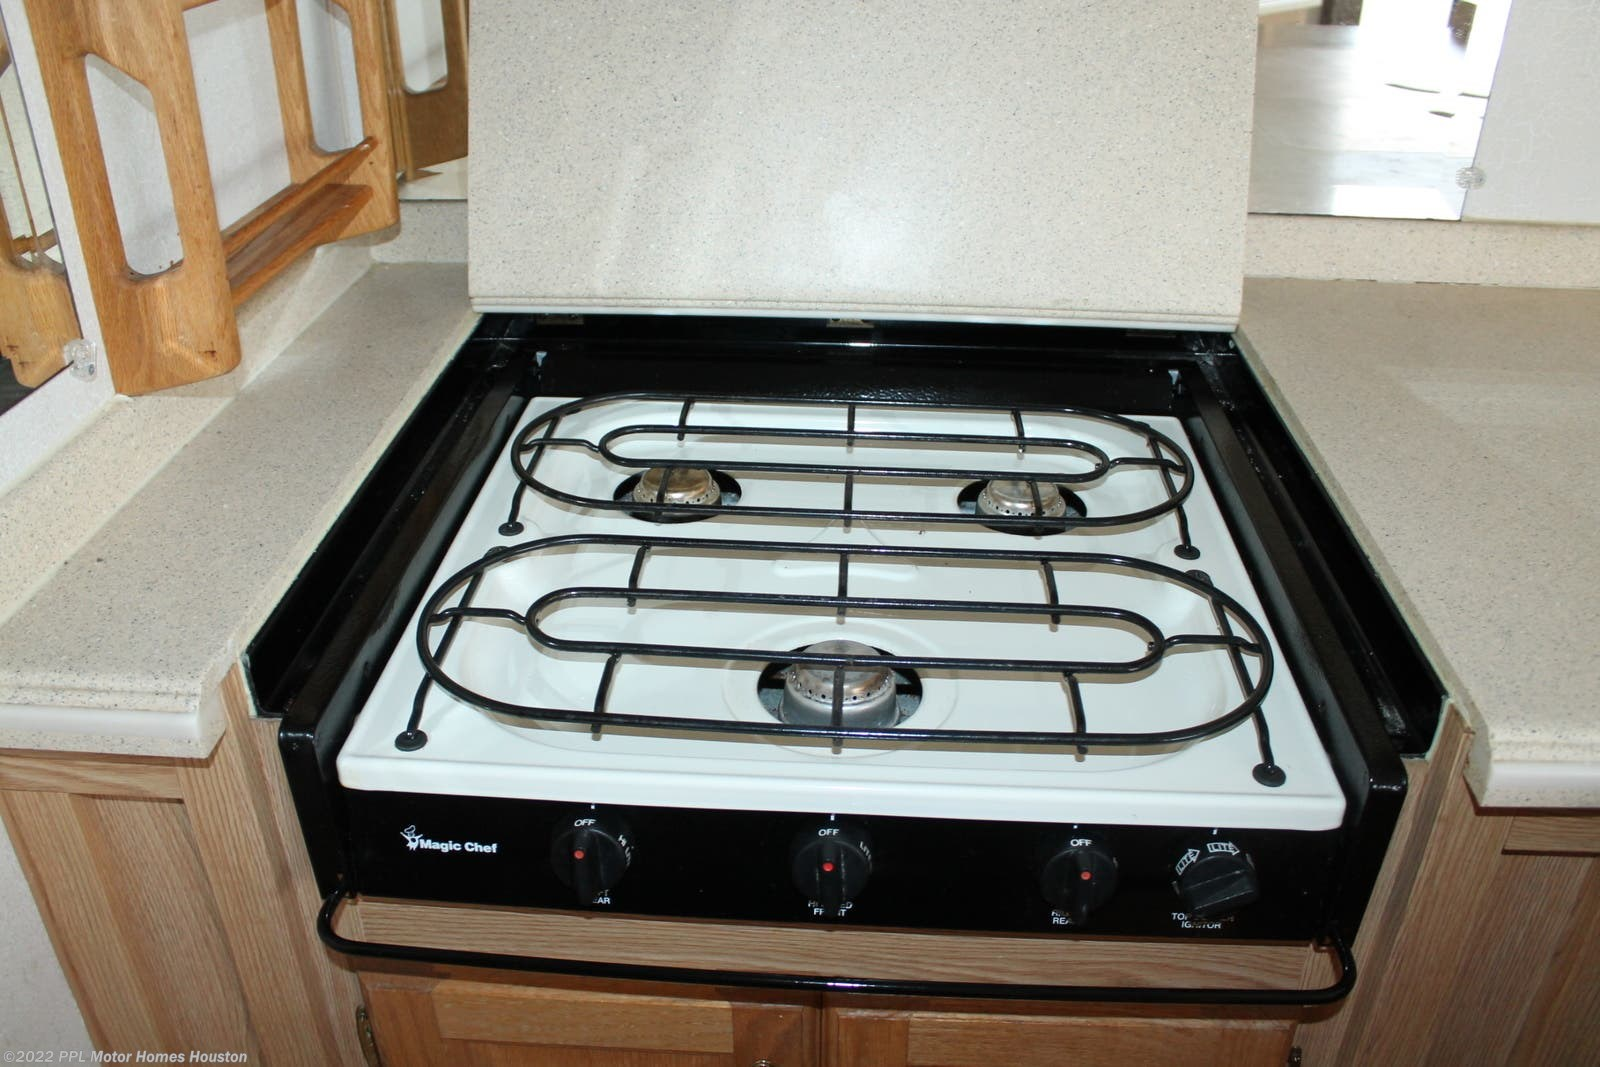 Rv Stovesovens Microwaves Parts Ppl Motor Homes >> 2002 Rexhall Rv Aerbus 3955 For Sale In Houston Tx 77074 D772